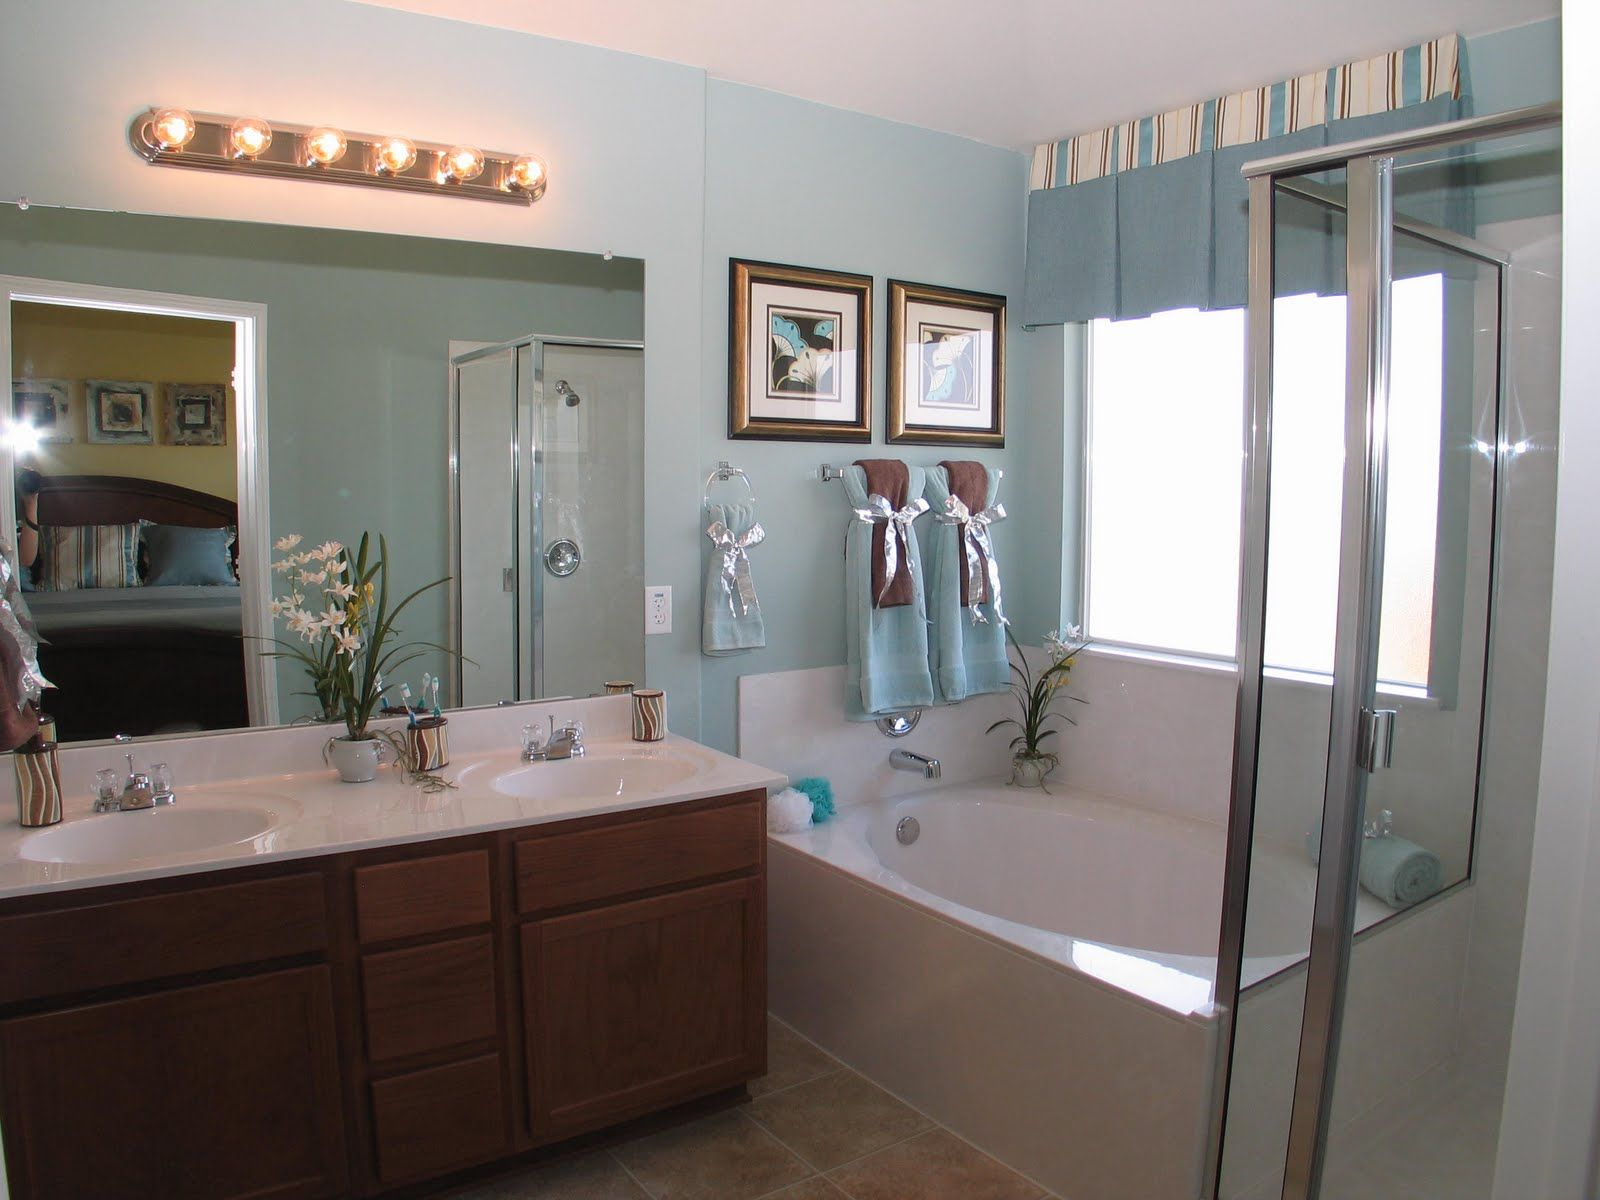 Bathroom vanity designs - Spa Bathroom Vanity Design Ideas